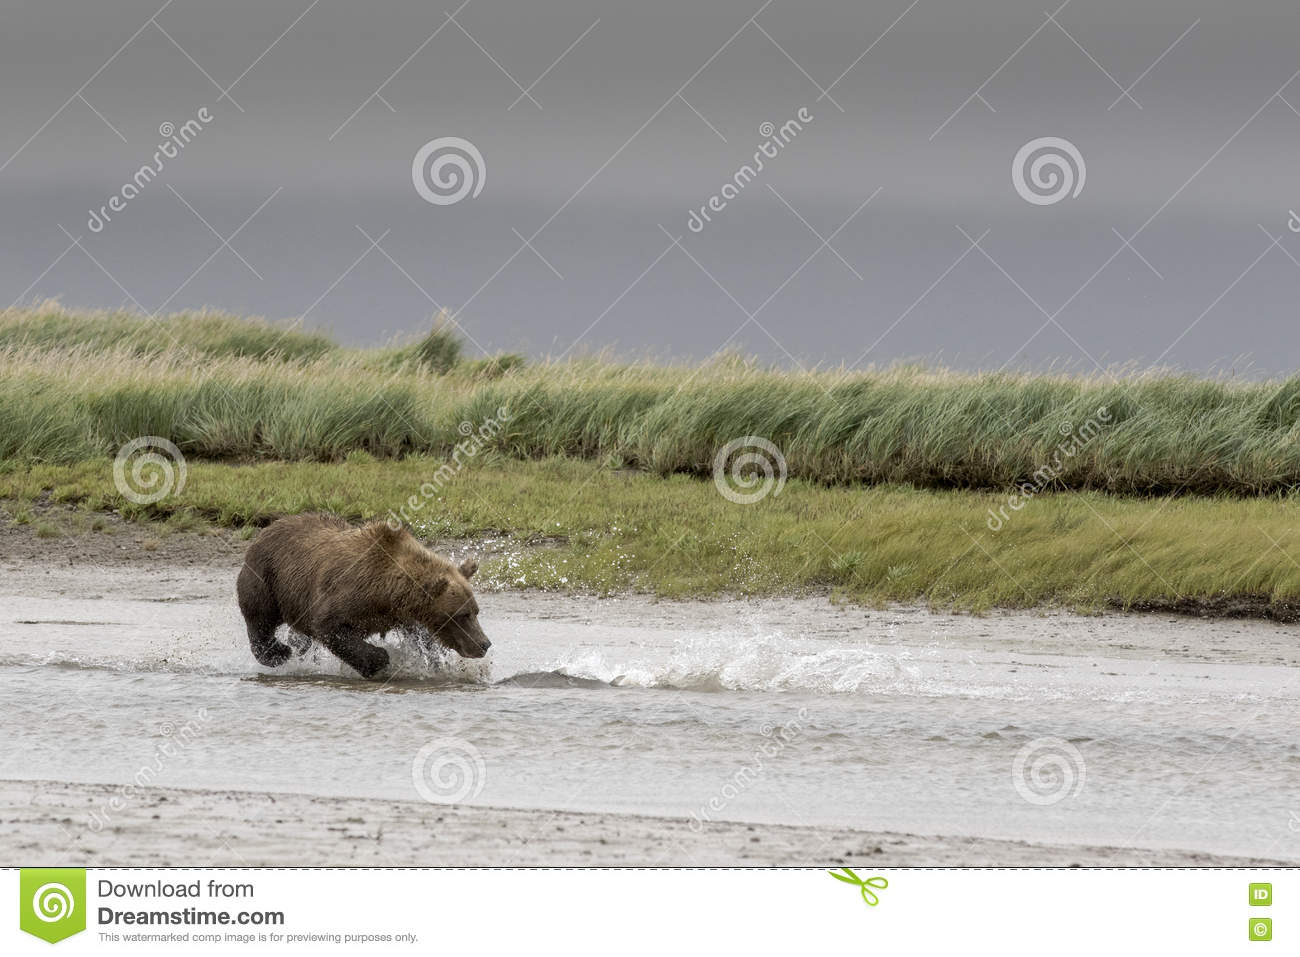 Grizzly and big Salmon.